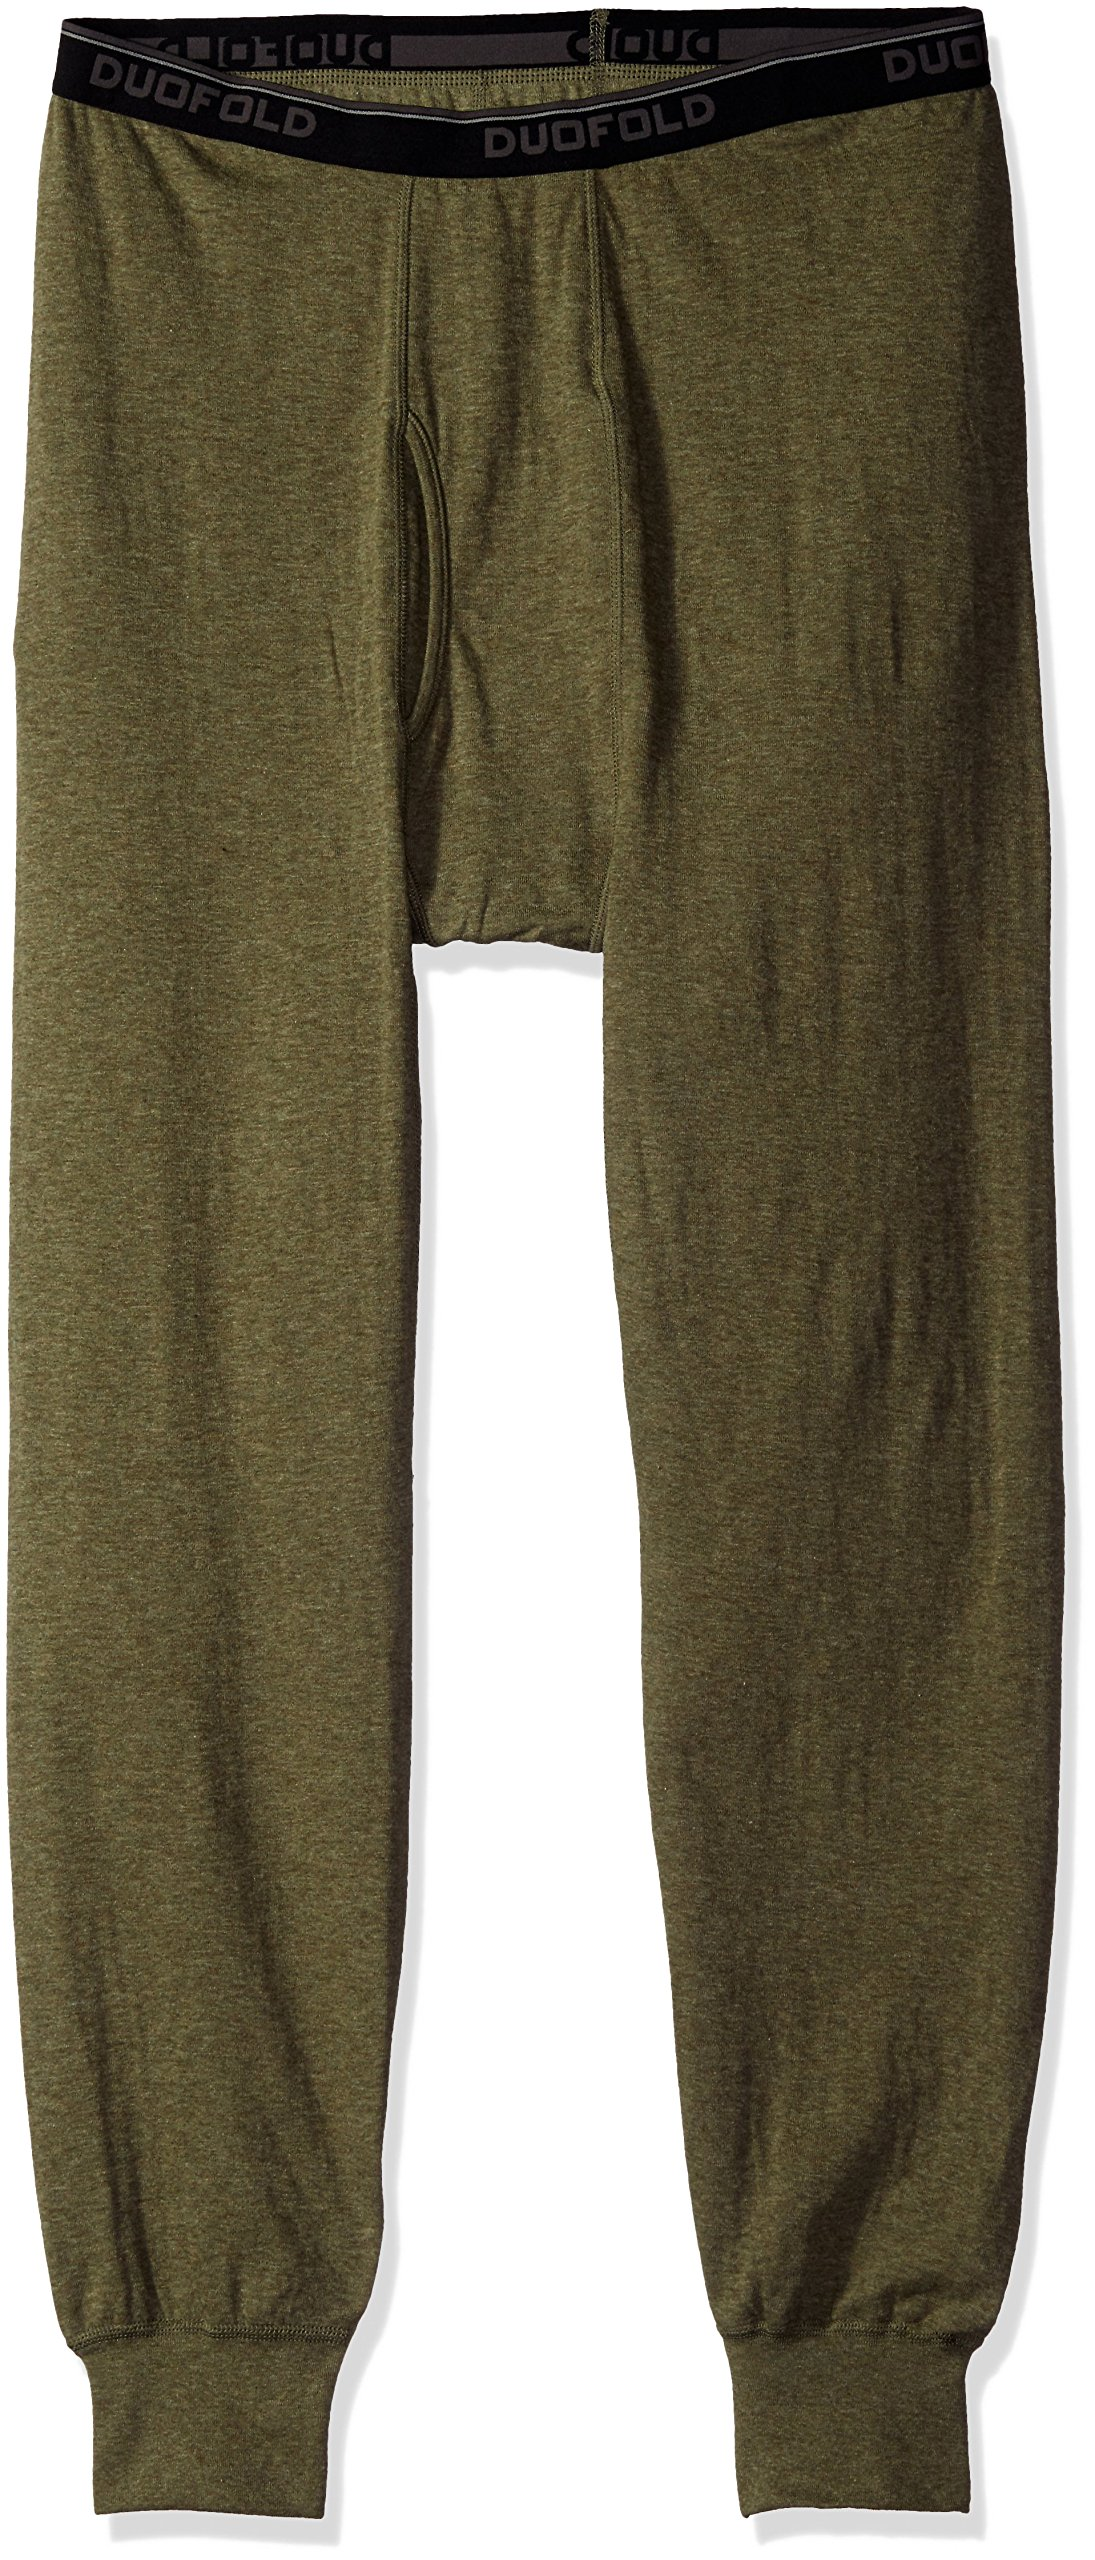 Duofold Men's Originals Ankle Length Bottom, Olive Heather, 2X Large